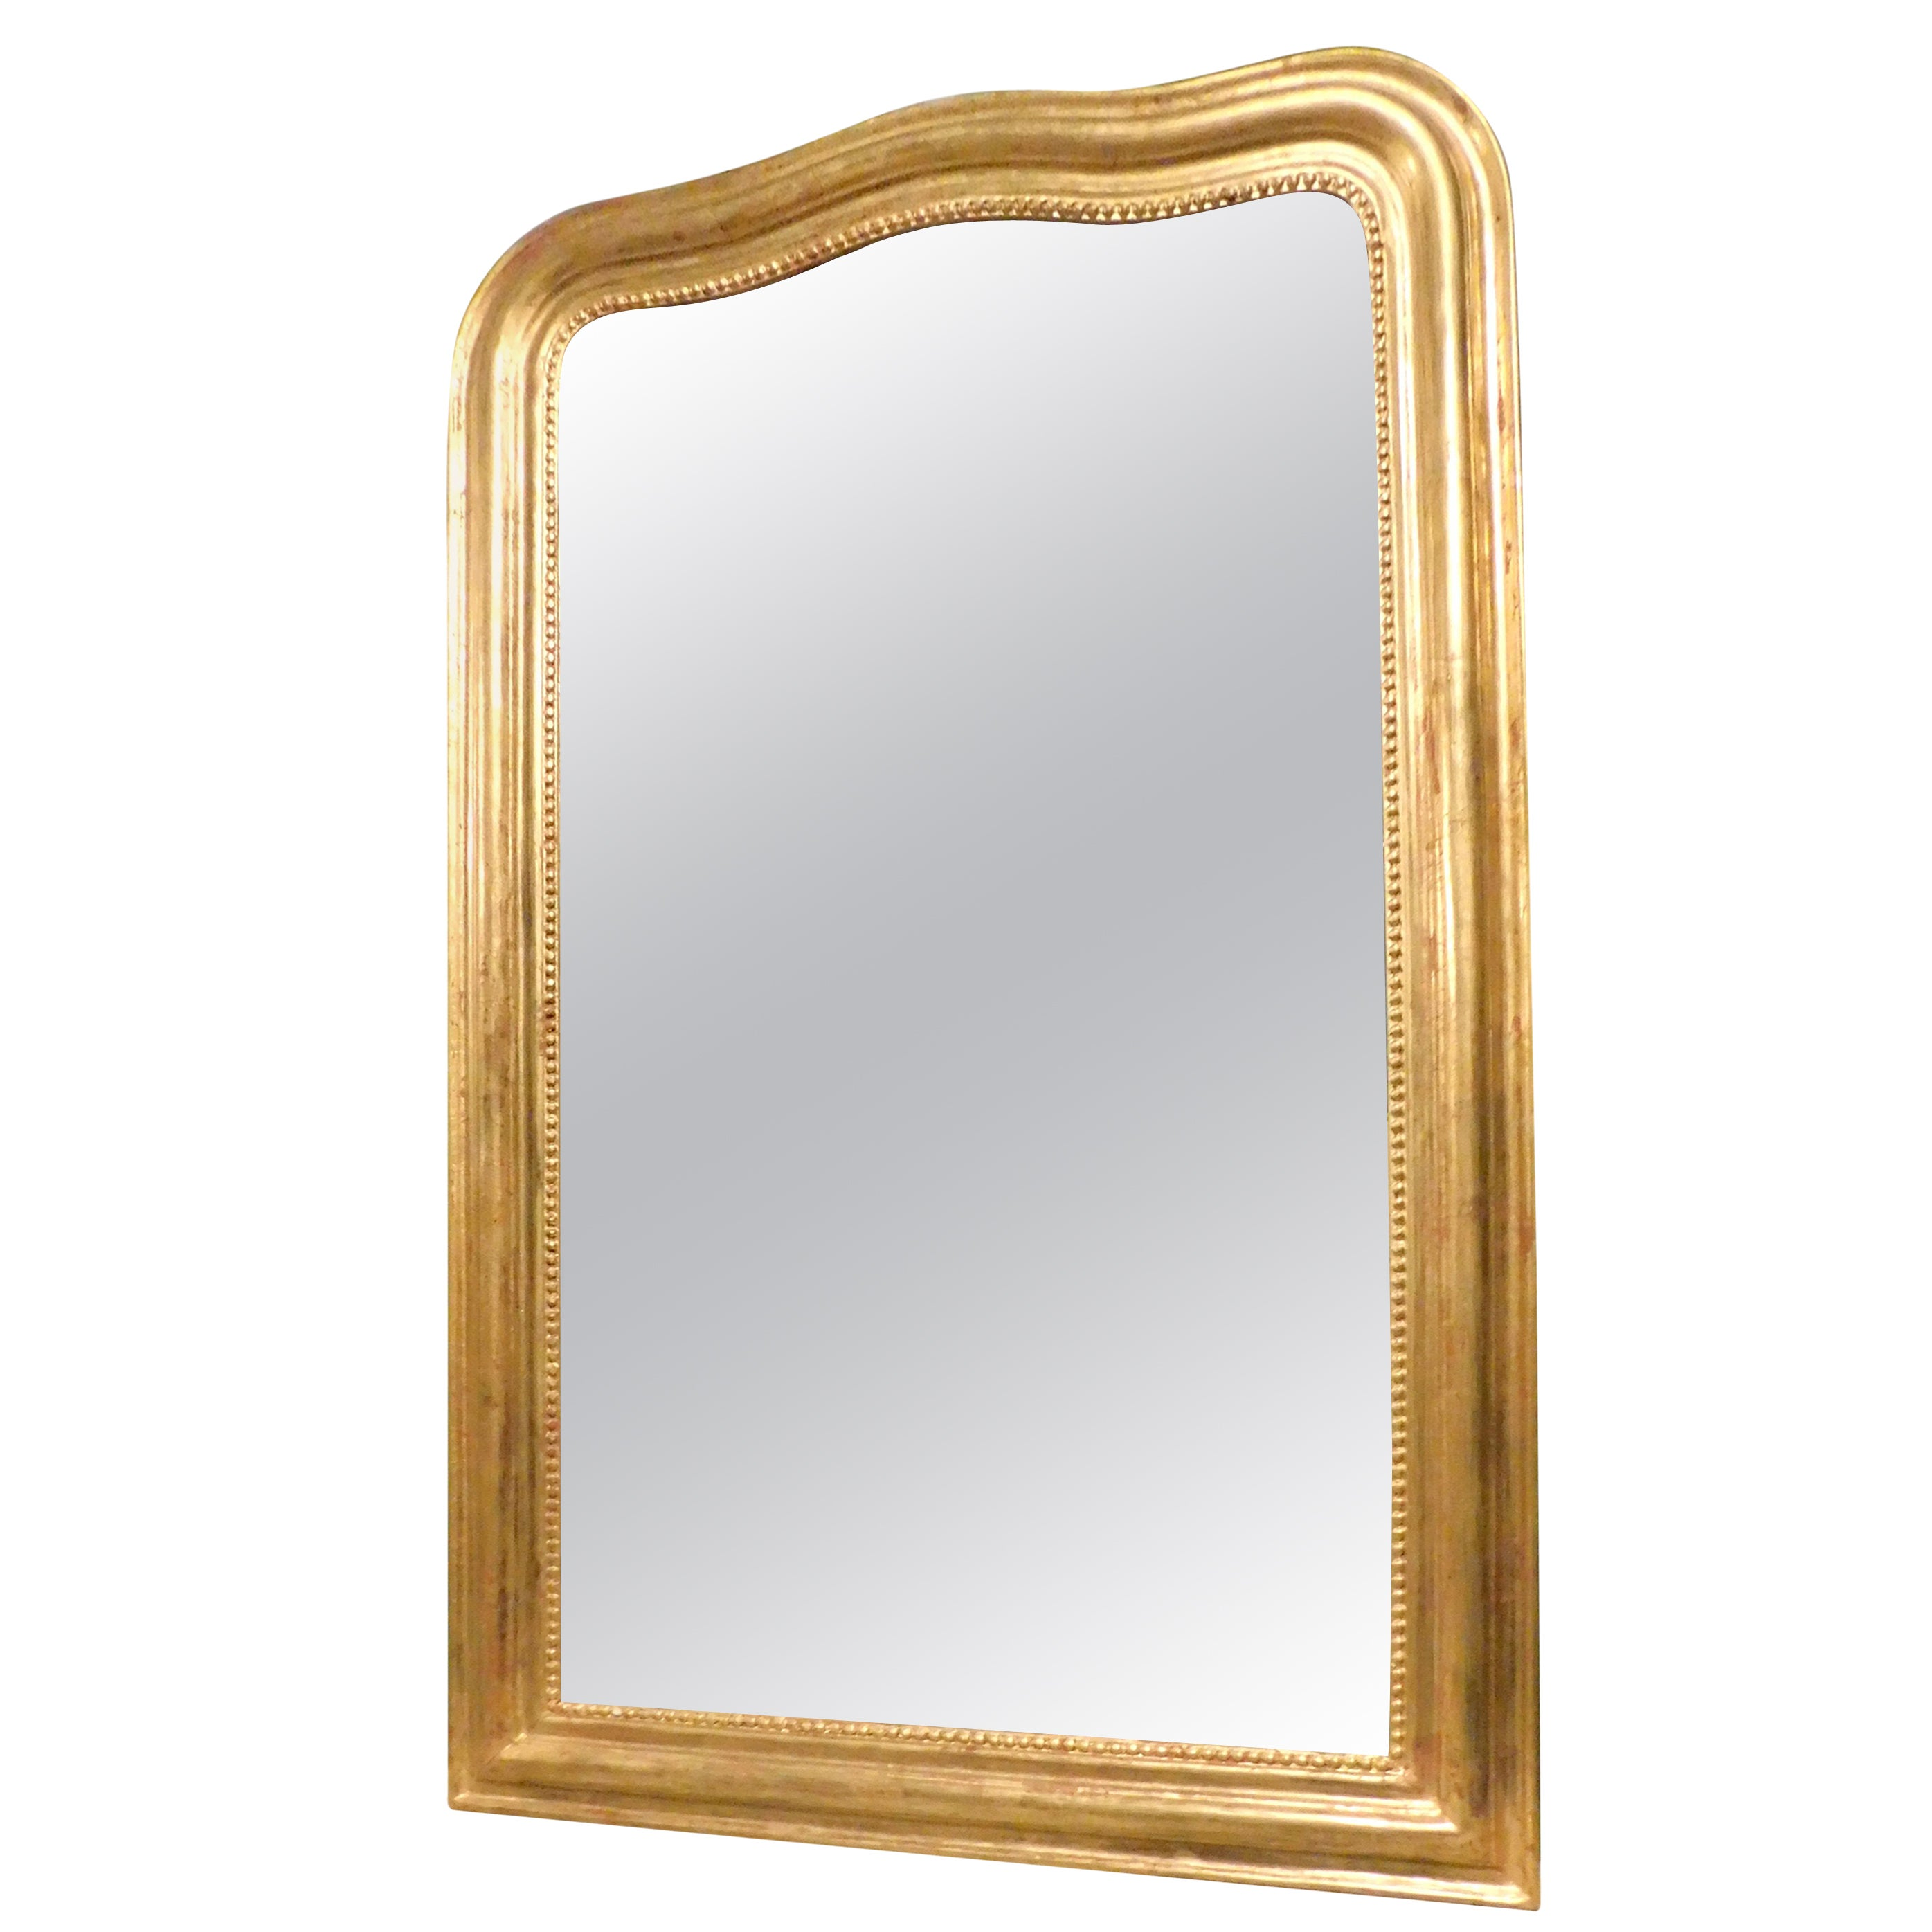 Antique Simple Gilded Mirror with Frame Moved, 1800, France